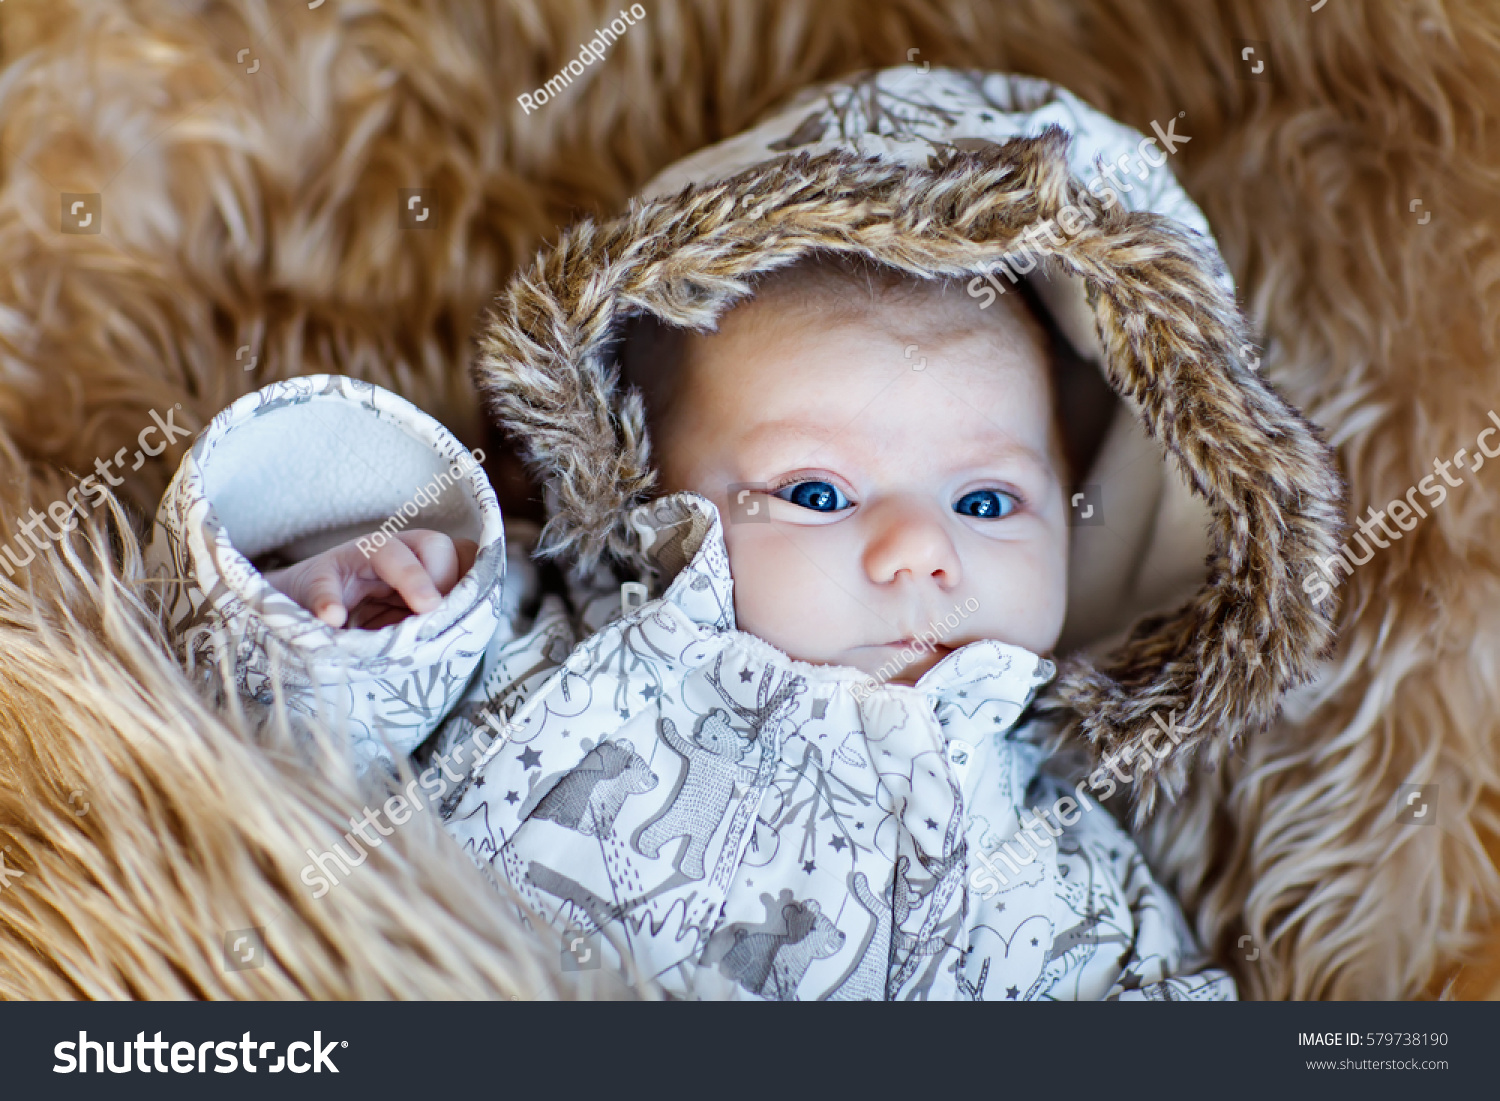 portrait newborn baby warm winter clothes stock photo 579738190 shutterstock. Black Bedroom Furniture Sets. Home Design Ideas